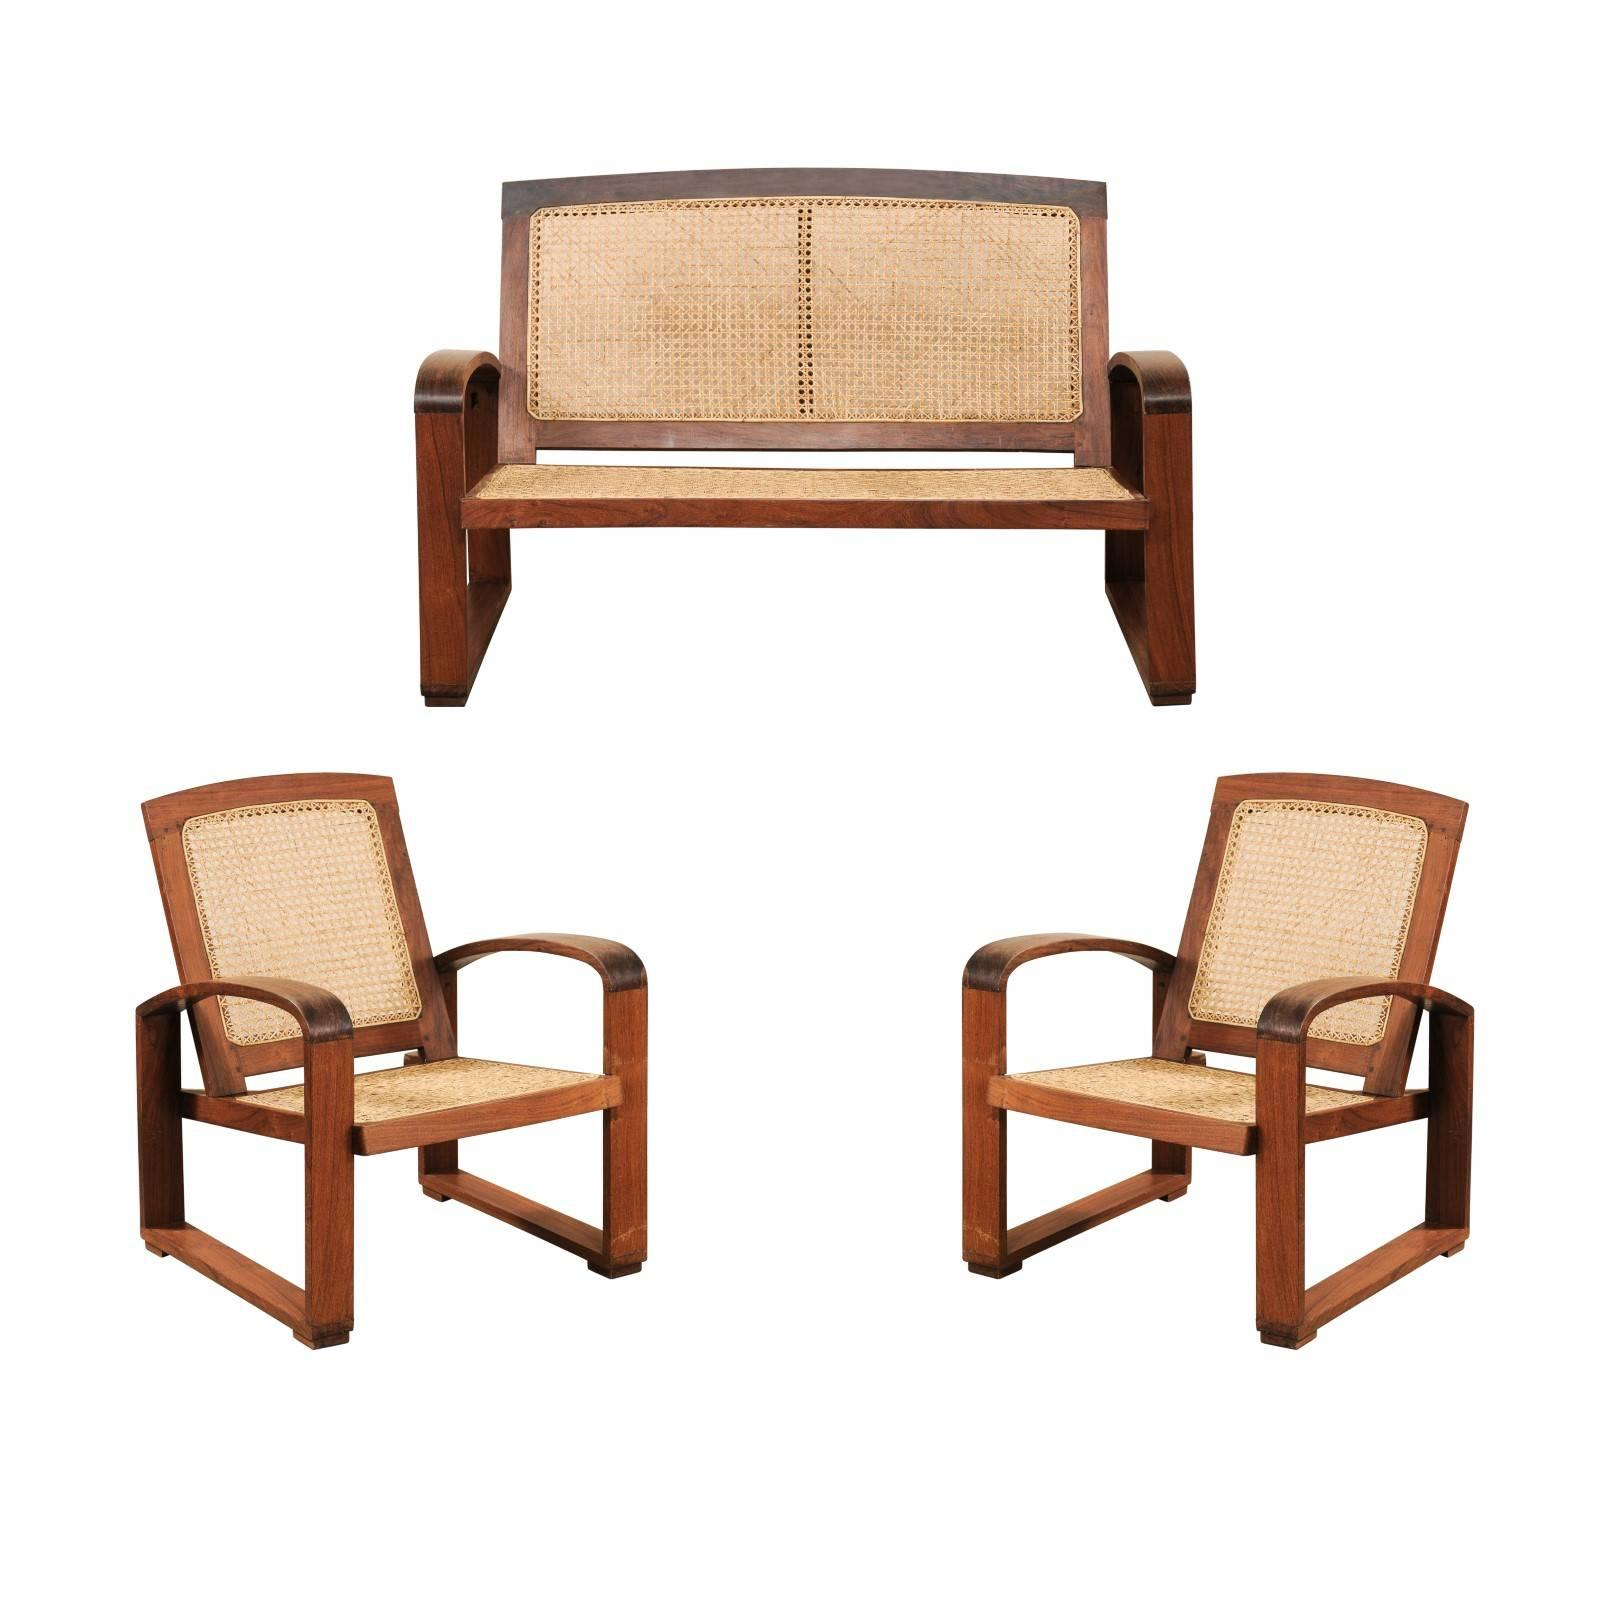 Vintage British Colonial Cane U0026 Wood 3 Piece Seating Set With Chairs U0026  Loveseat